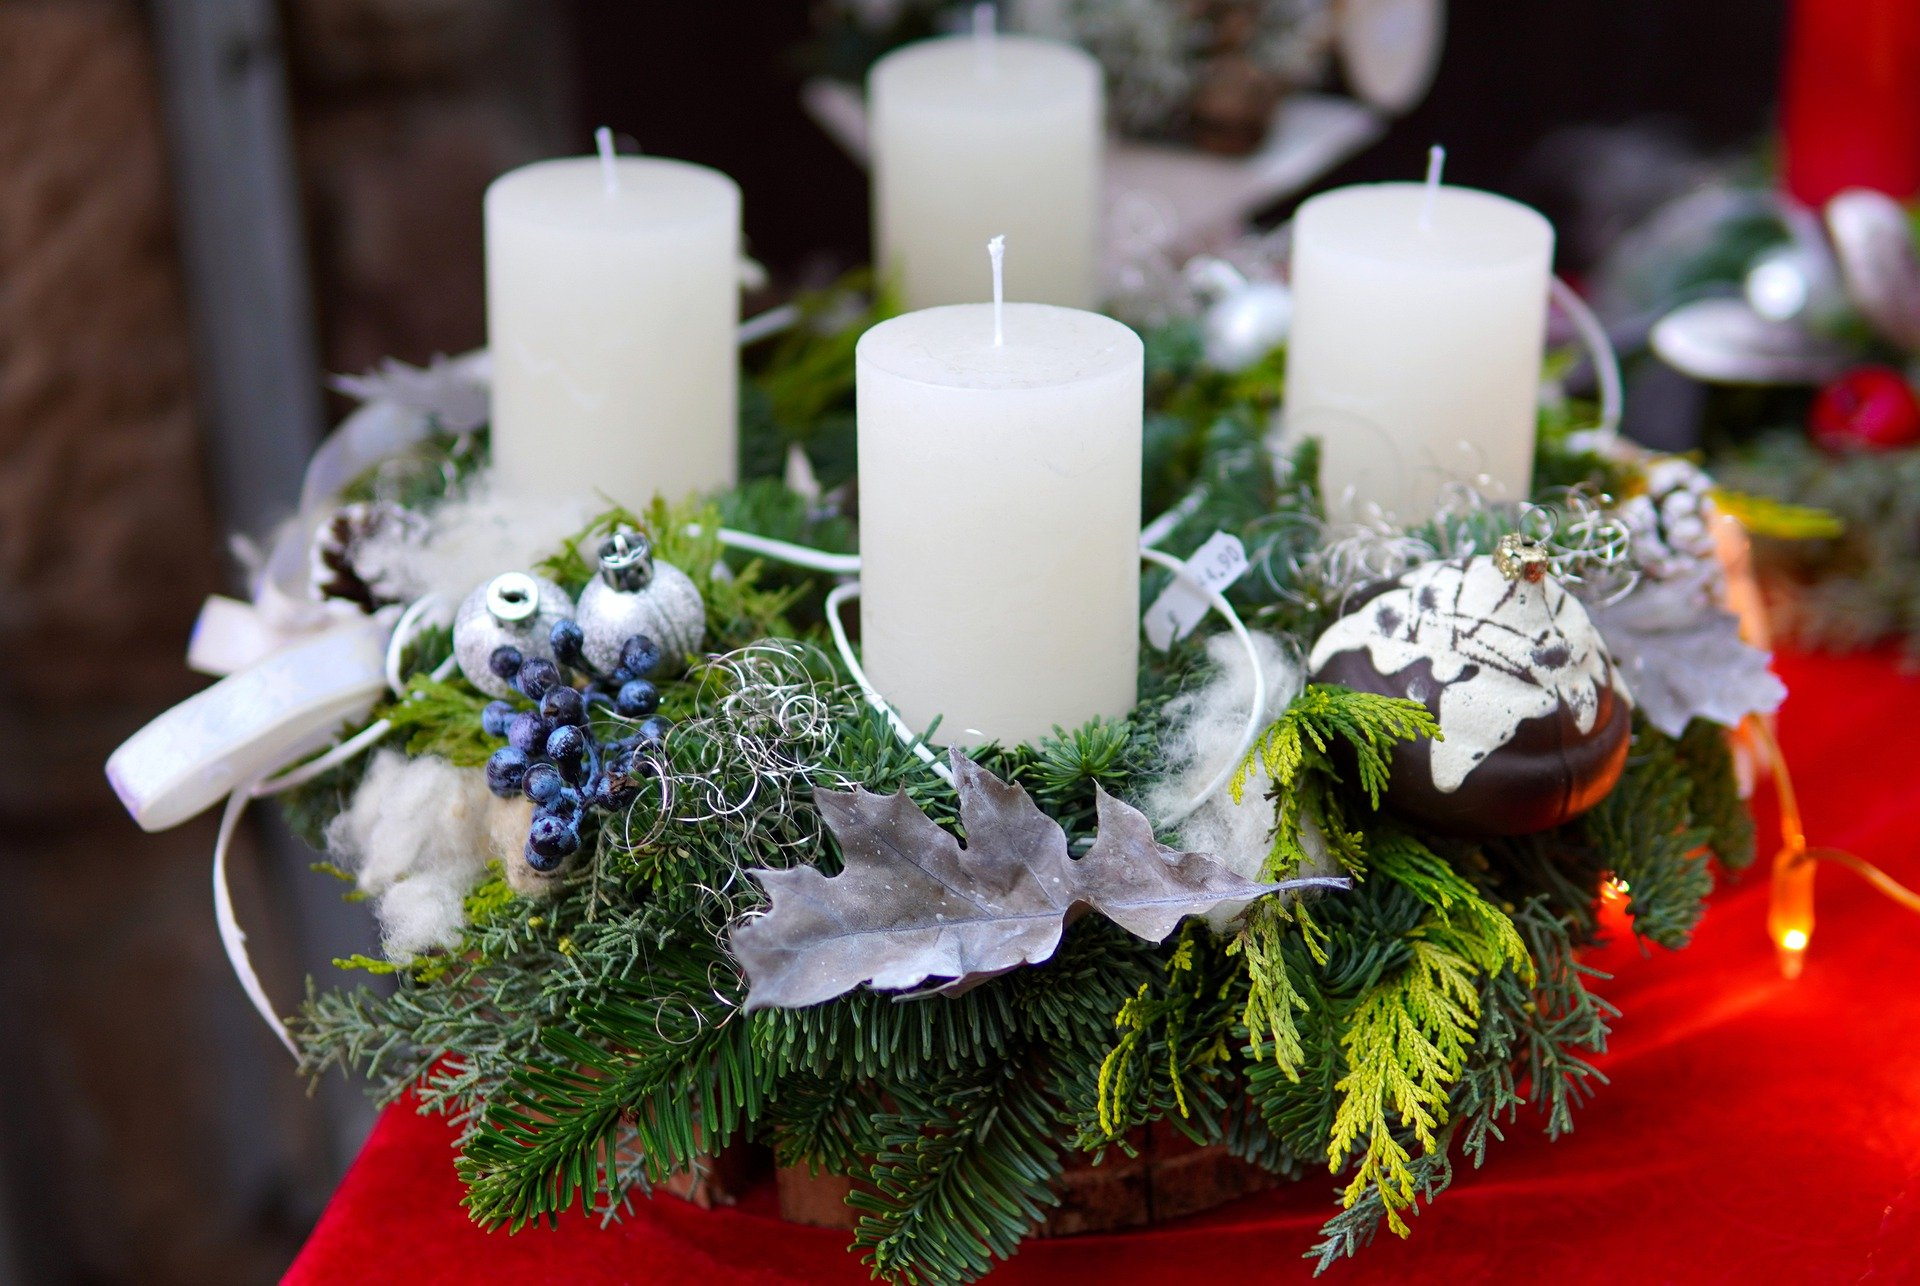 advent-wreath-4651289_1920